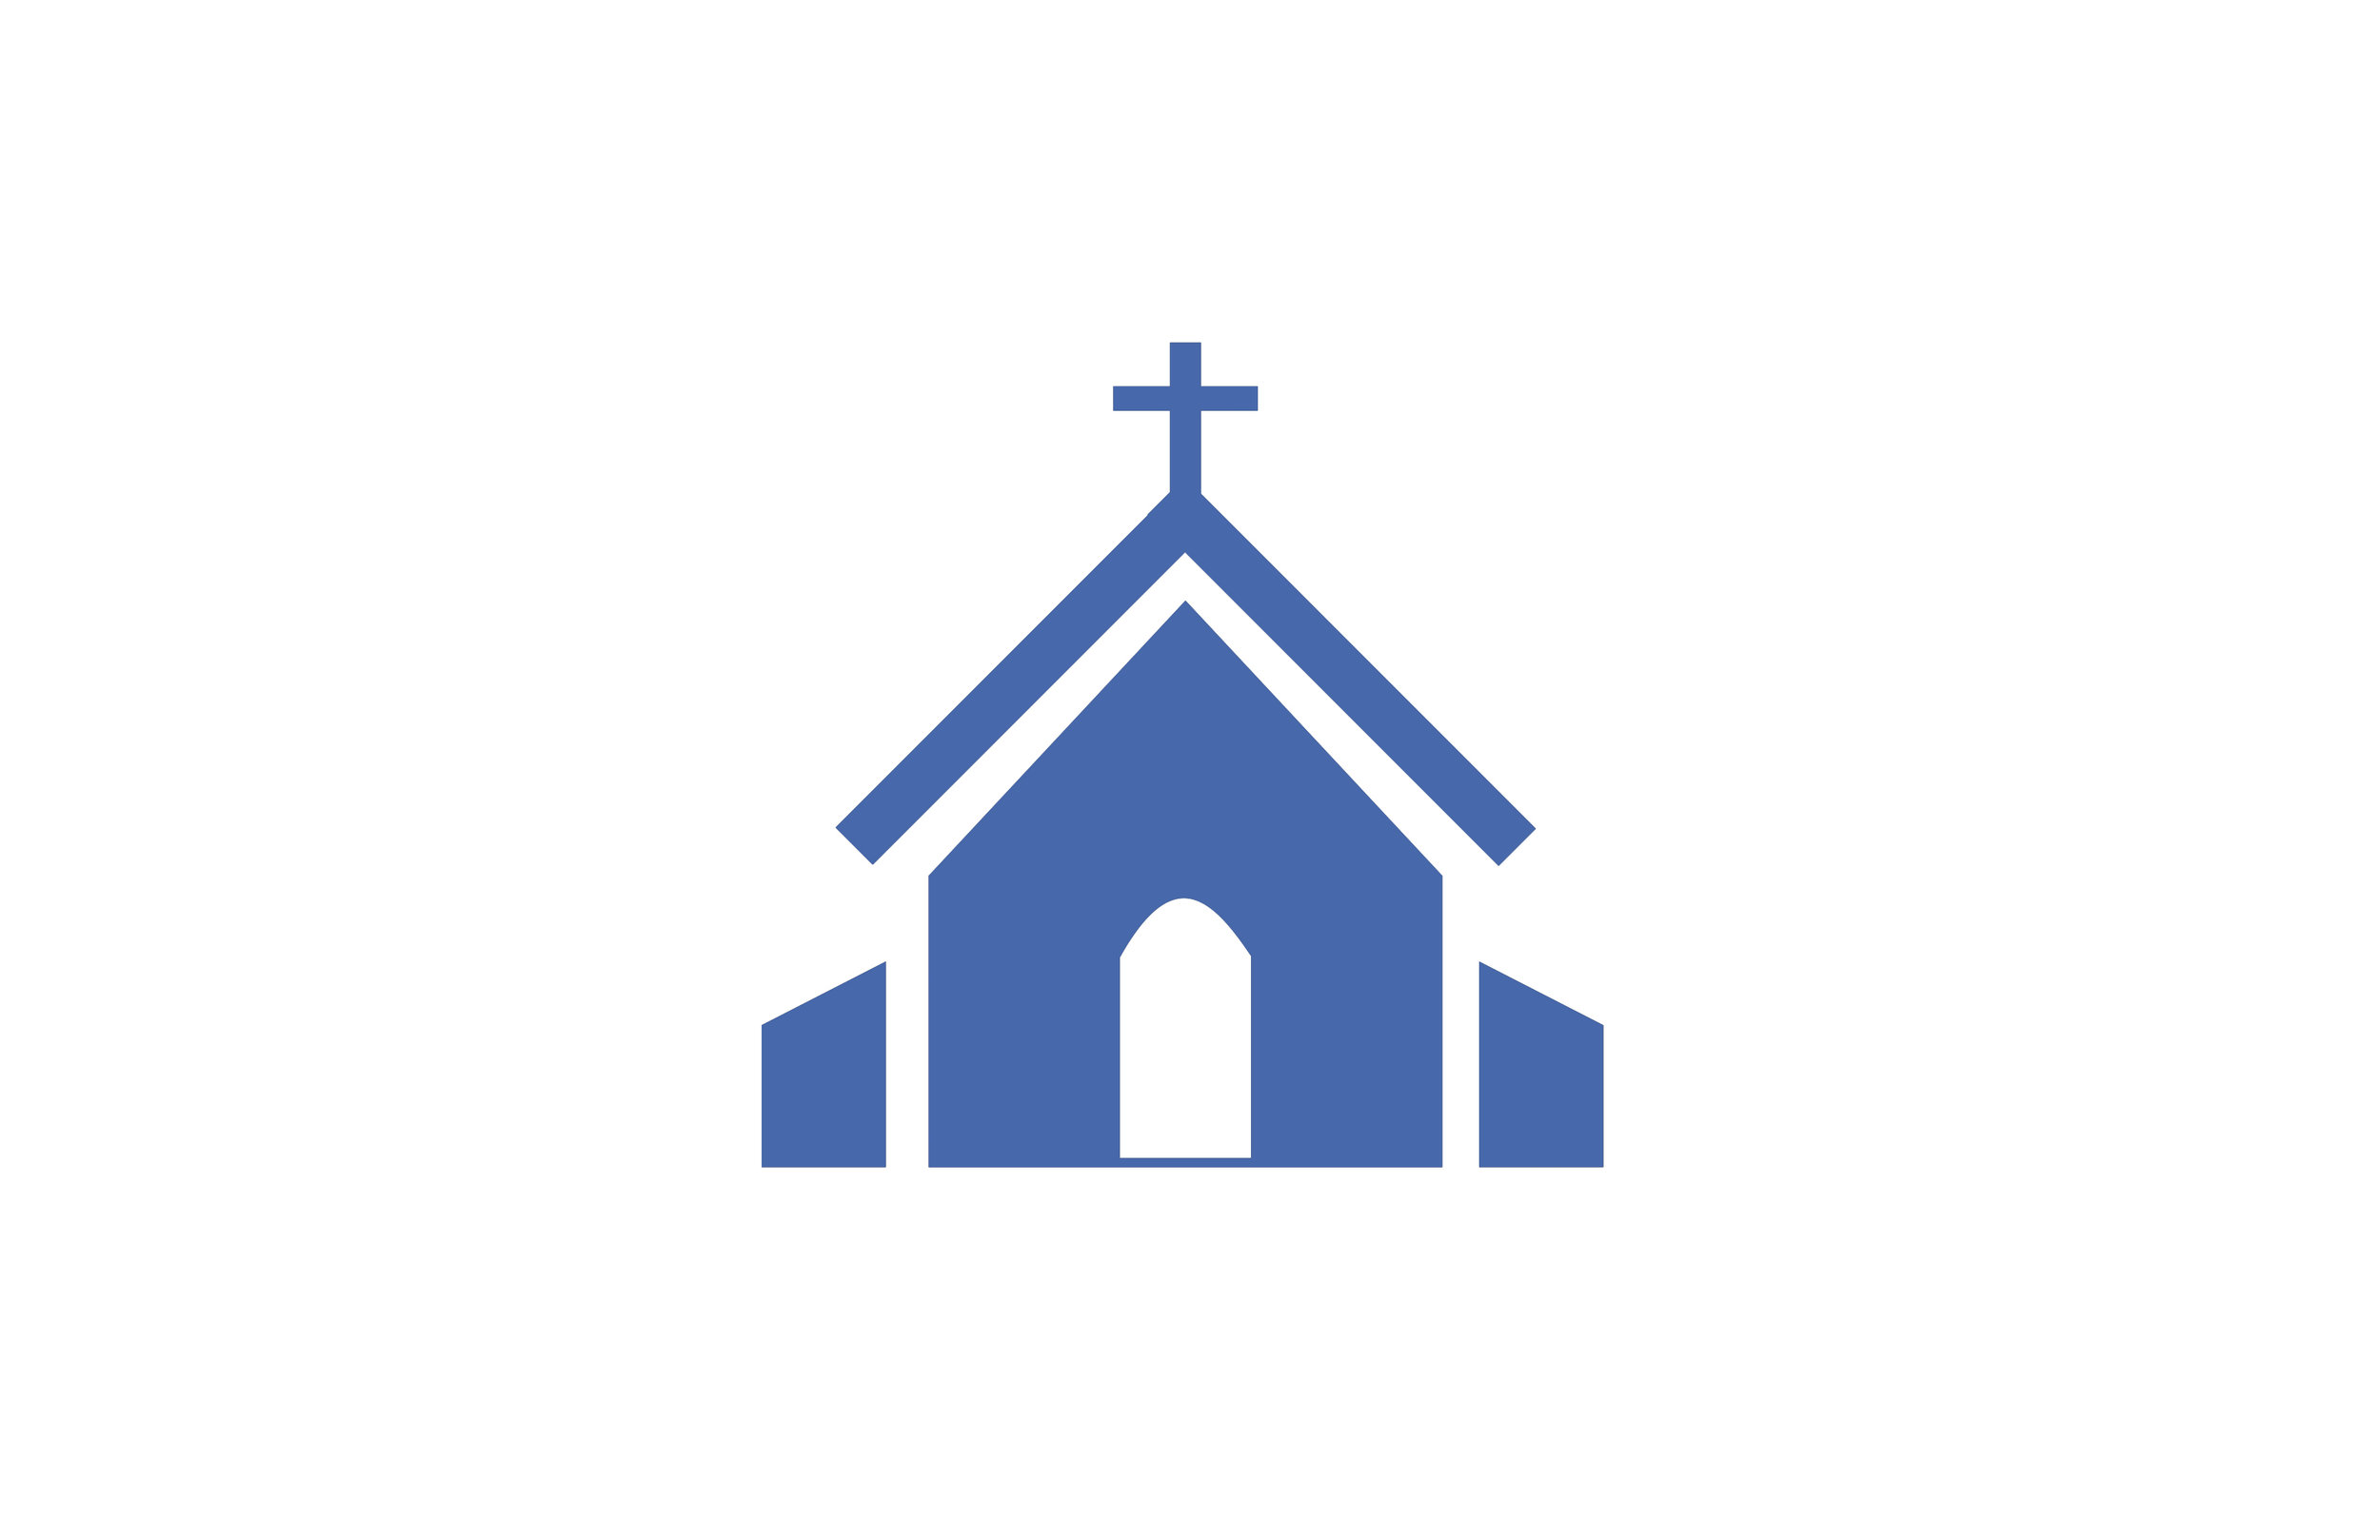 Church Financial Aid - A financial consultation with our team to review all of your church's books. Let us see where your money is going and figure out ways to cut costs and optimize spending.